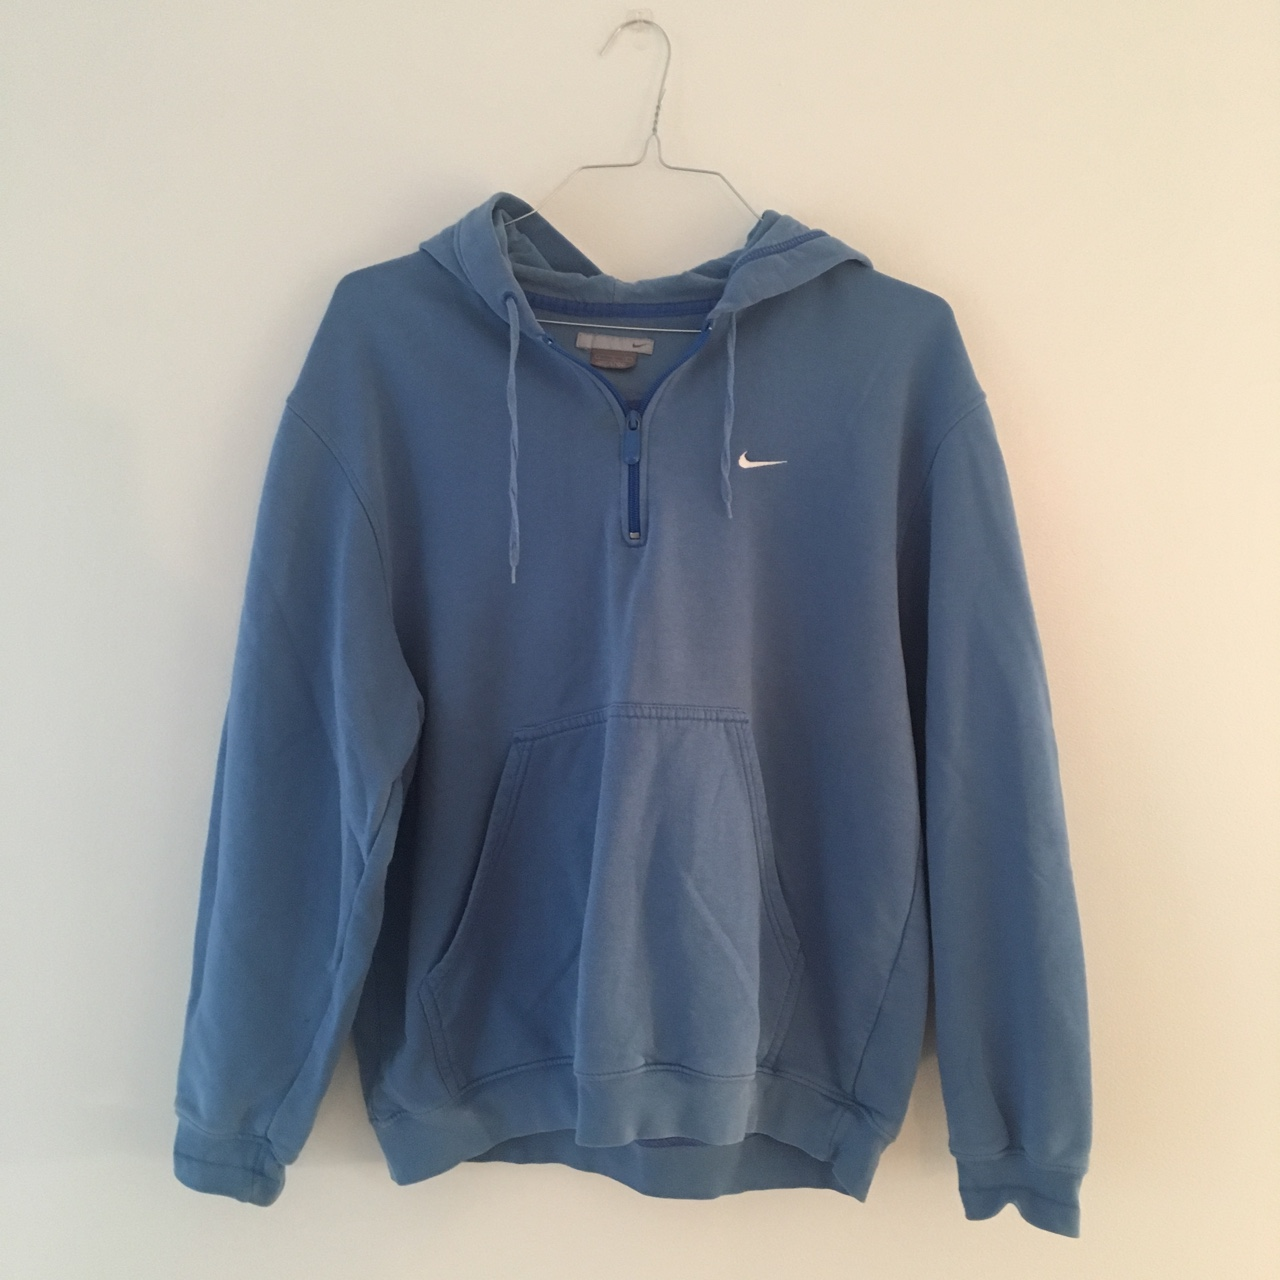 32bea18bad9c Light blue Nike hoodie with pocket and logo!😁 If girl cute - Depop